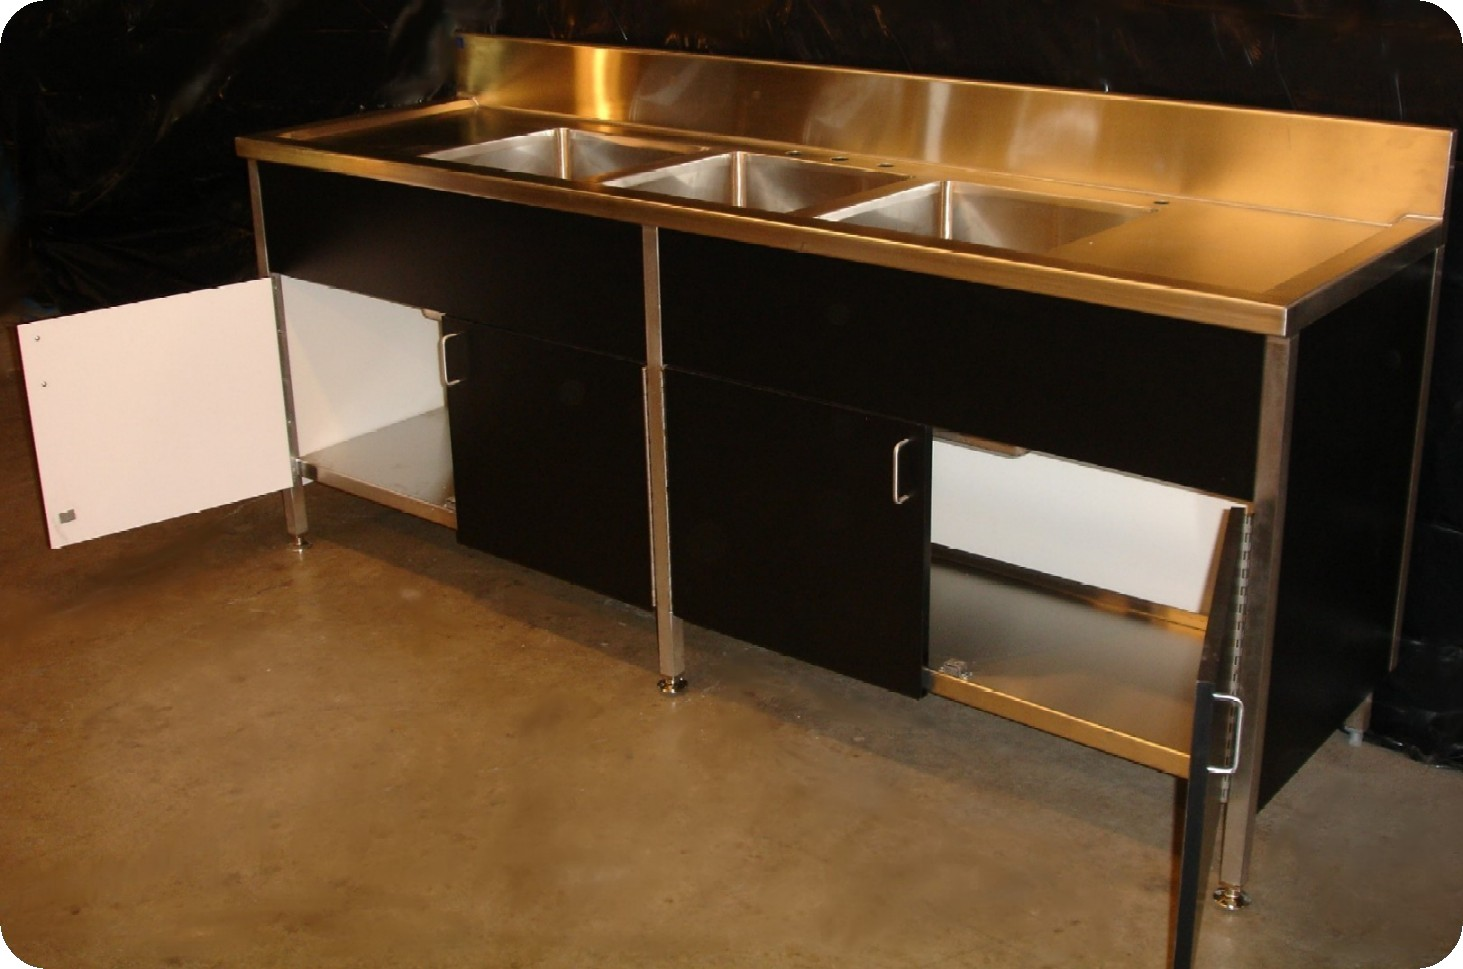 commercial kitchen cabinets. cabinetc cabinetb Cabinets  Monroe Kitchen Equipment INC